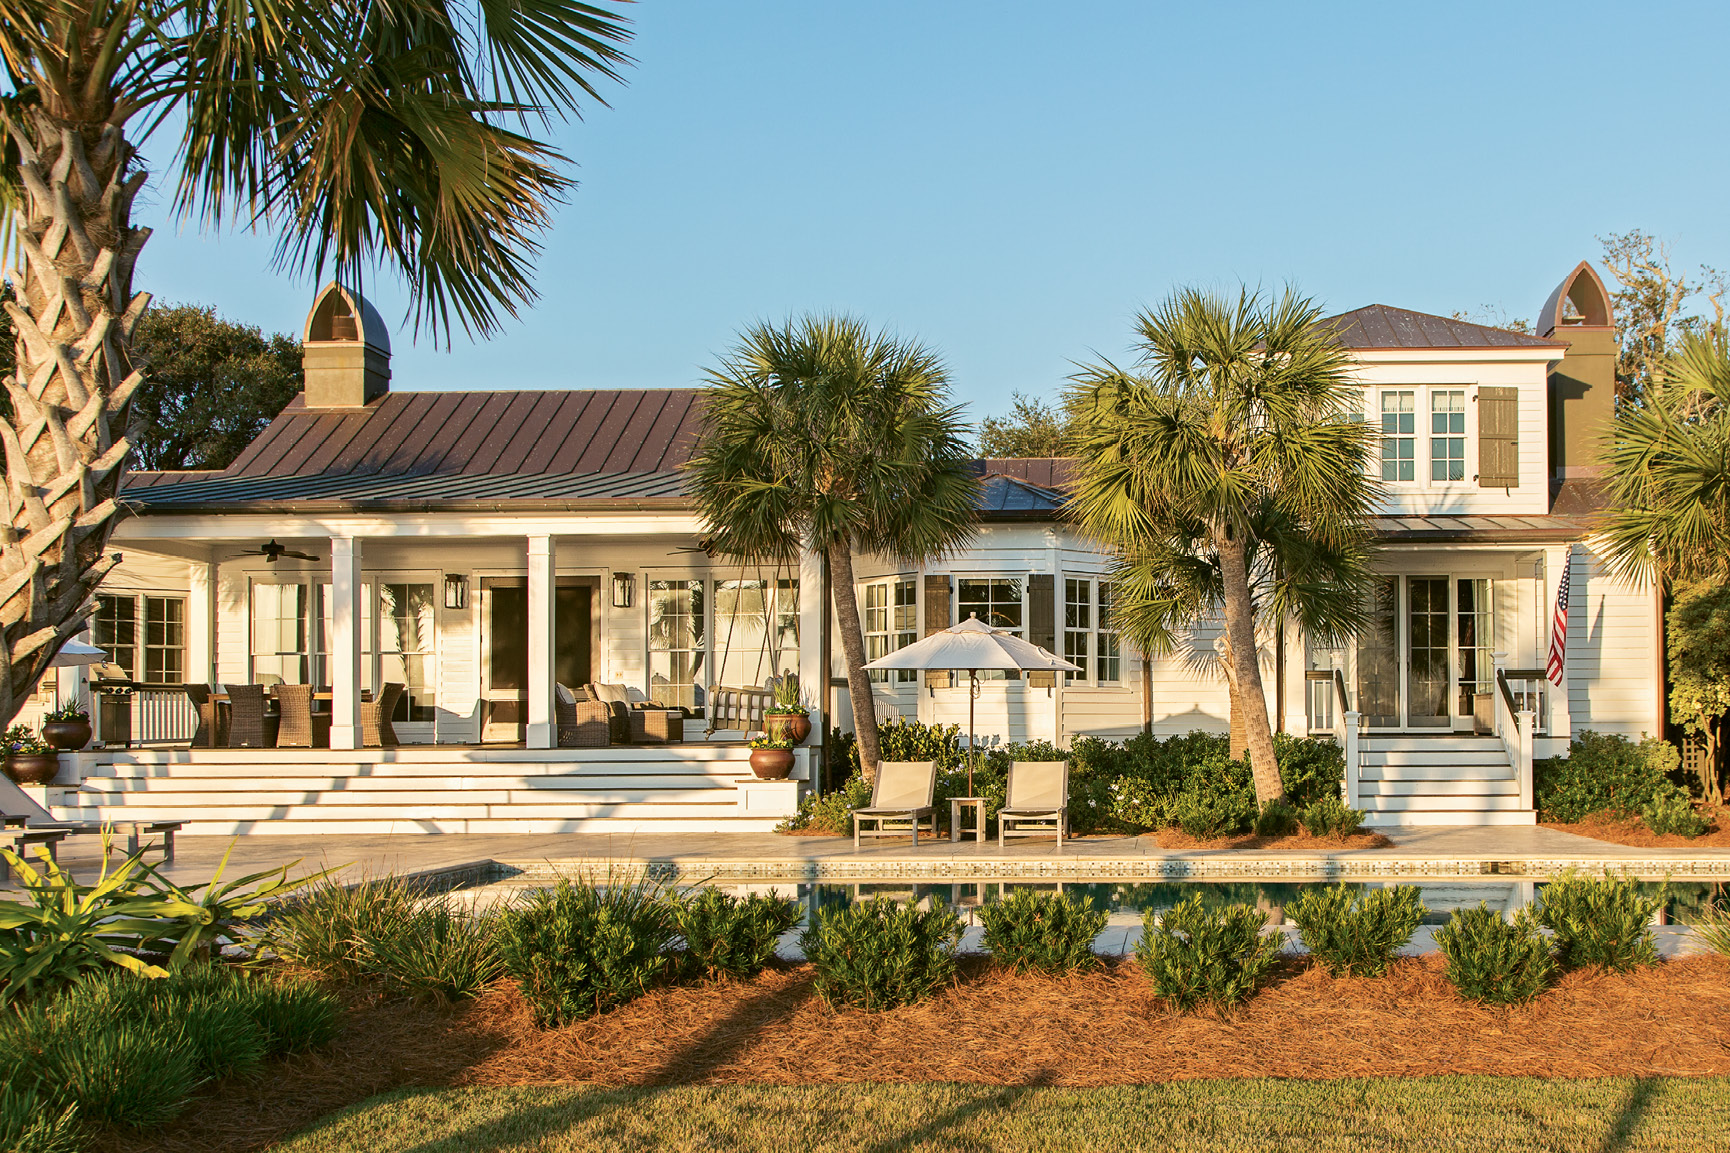 LOVE AT FIRST SIGHT: Charleston native Tara King first fell for this Sullivan's Island house in her teens. After admiring it from afar for some 25 years, she and her husband, Kirk, purchased the more-than-a-century-old home in 2011. In the process of making it their own, they added a new back porch with French doors to maximize oceanfront views.